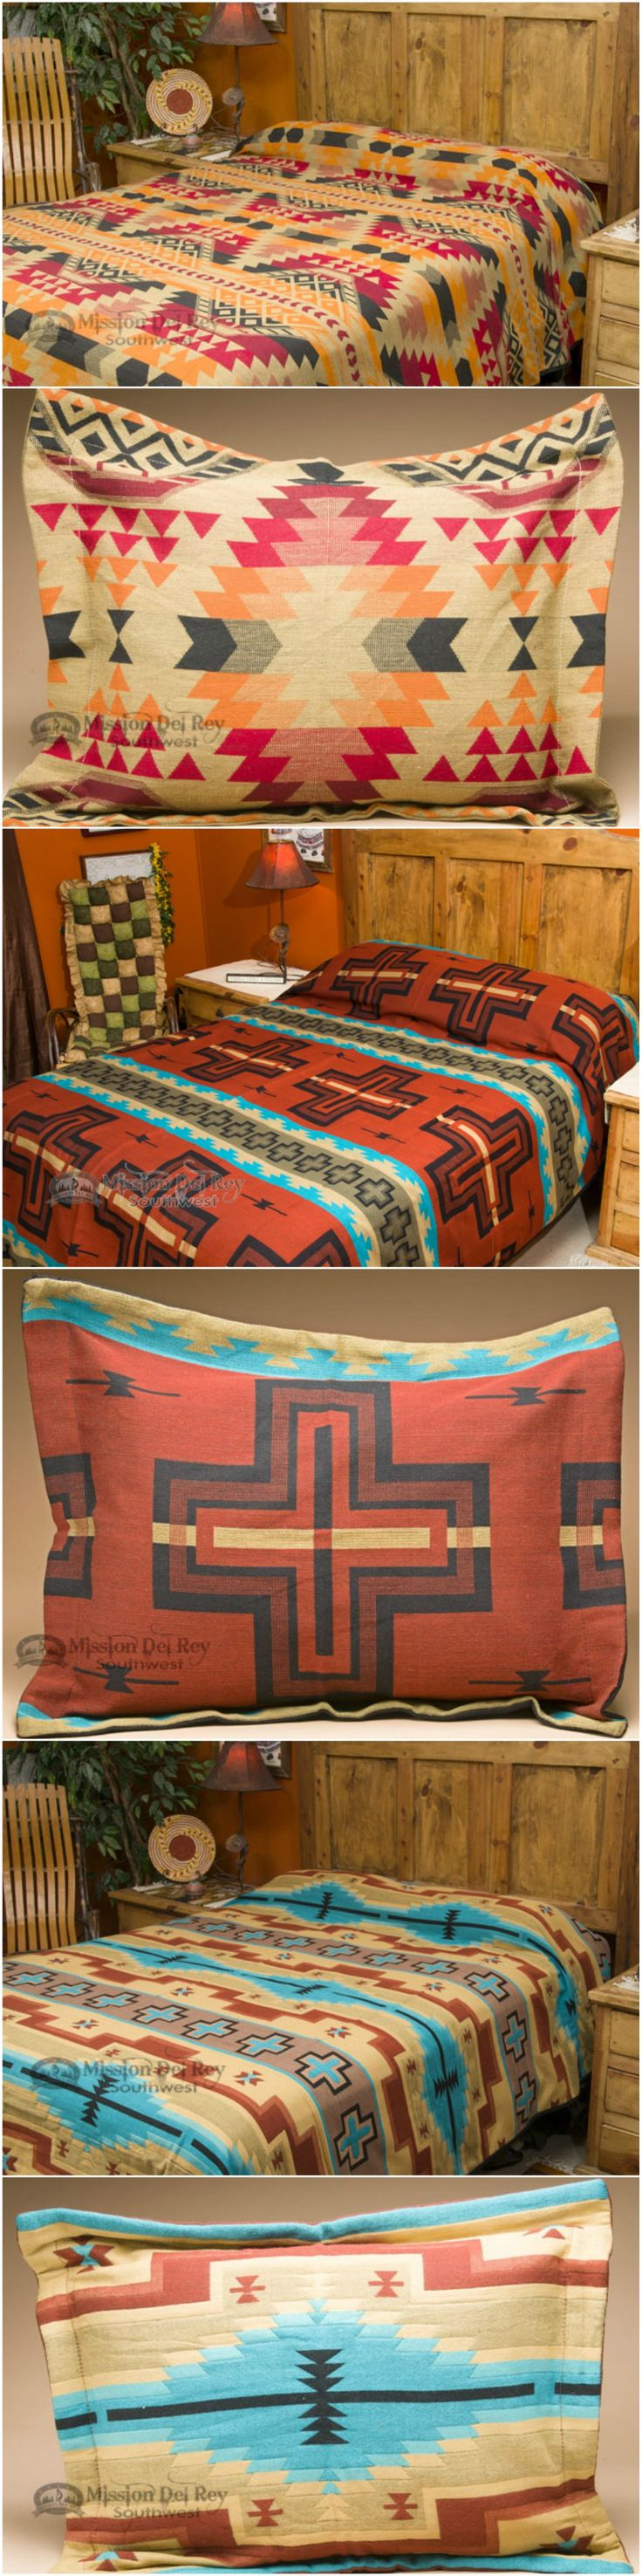 comforters charcoal grey western southwestern rustic and blue green sets bedding bedspreads cheap of zen horse comforter summer full size